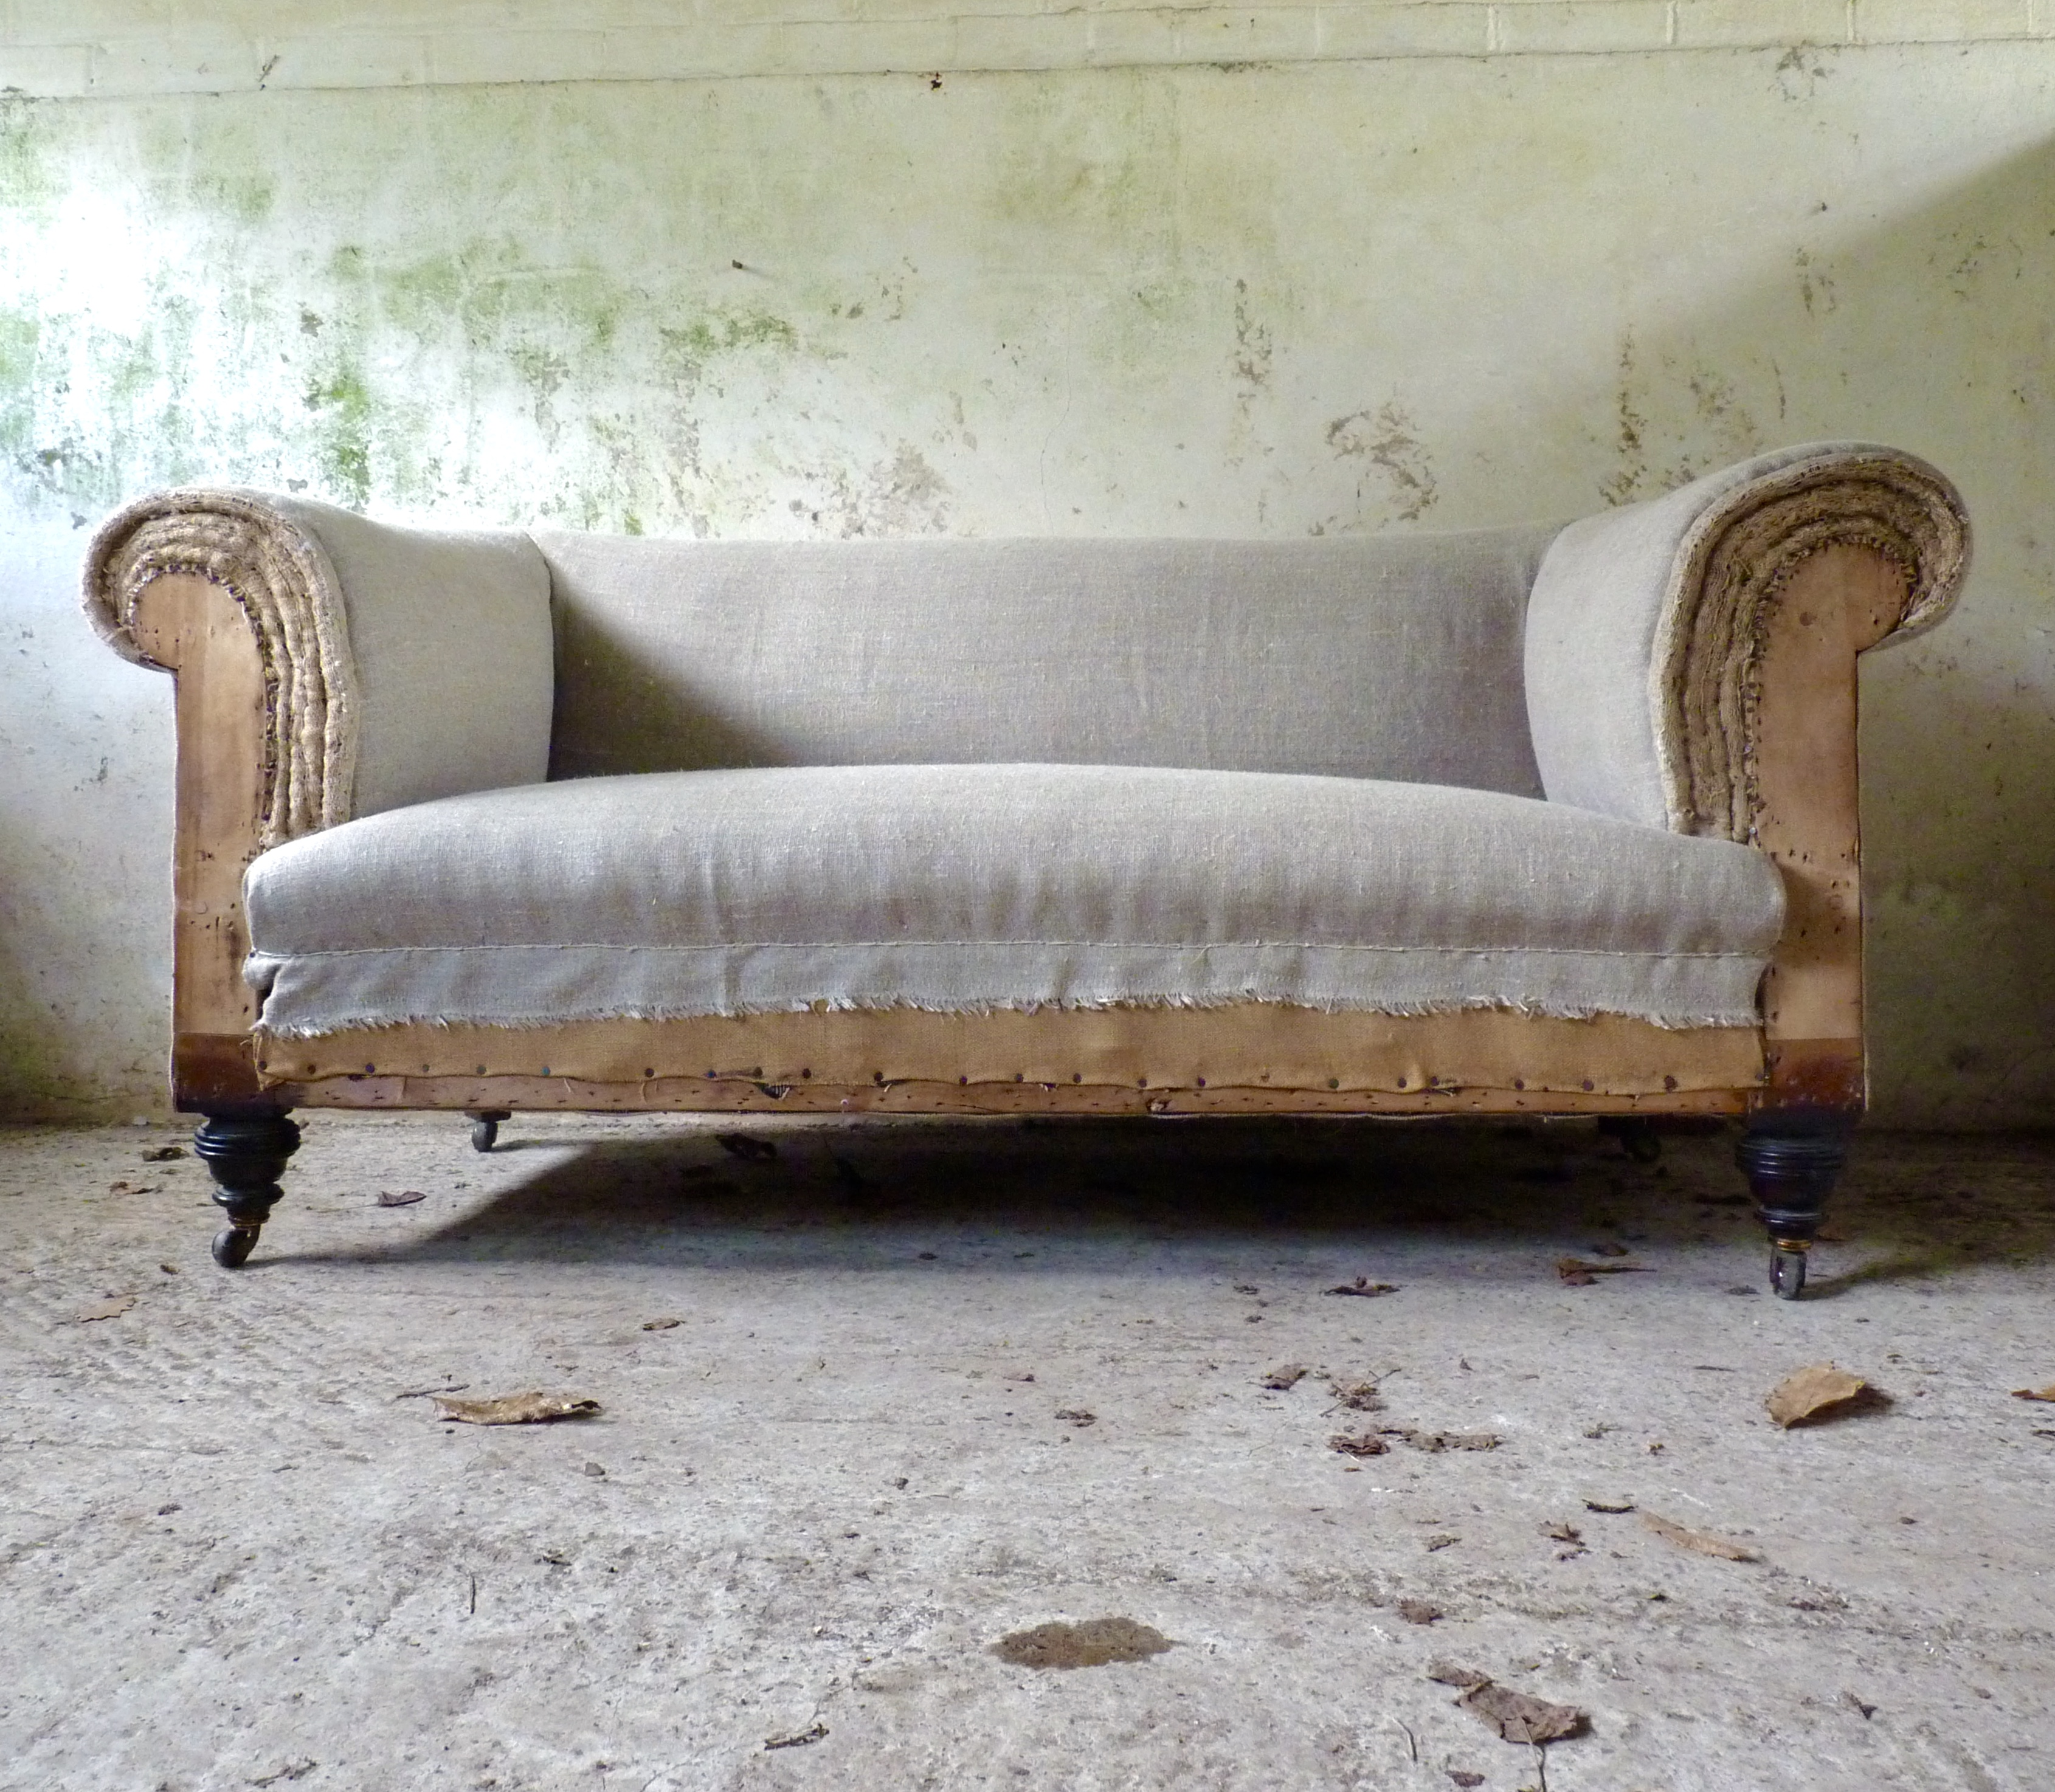 deconstructed two seater Chesterfield sofa